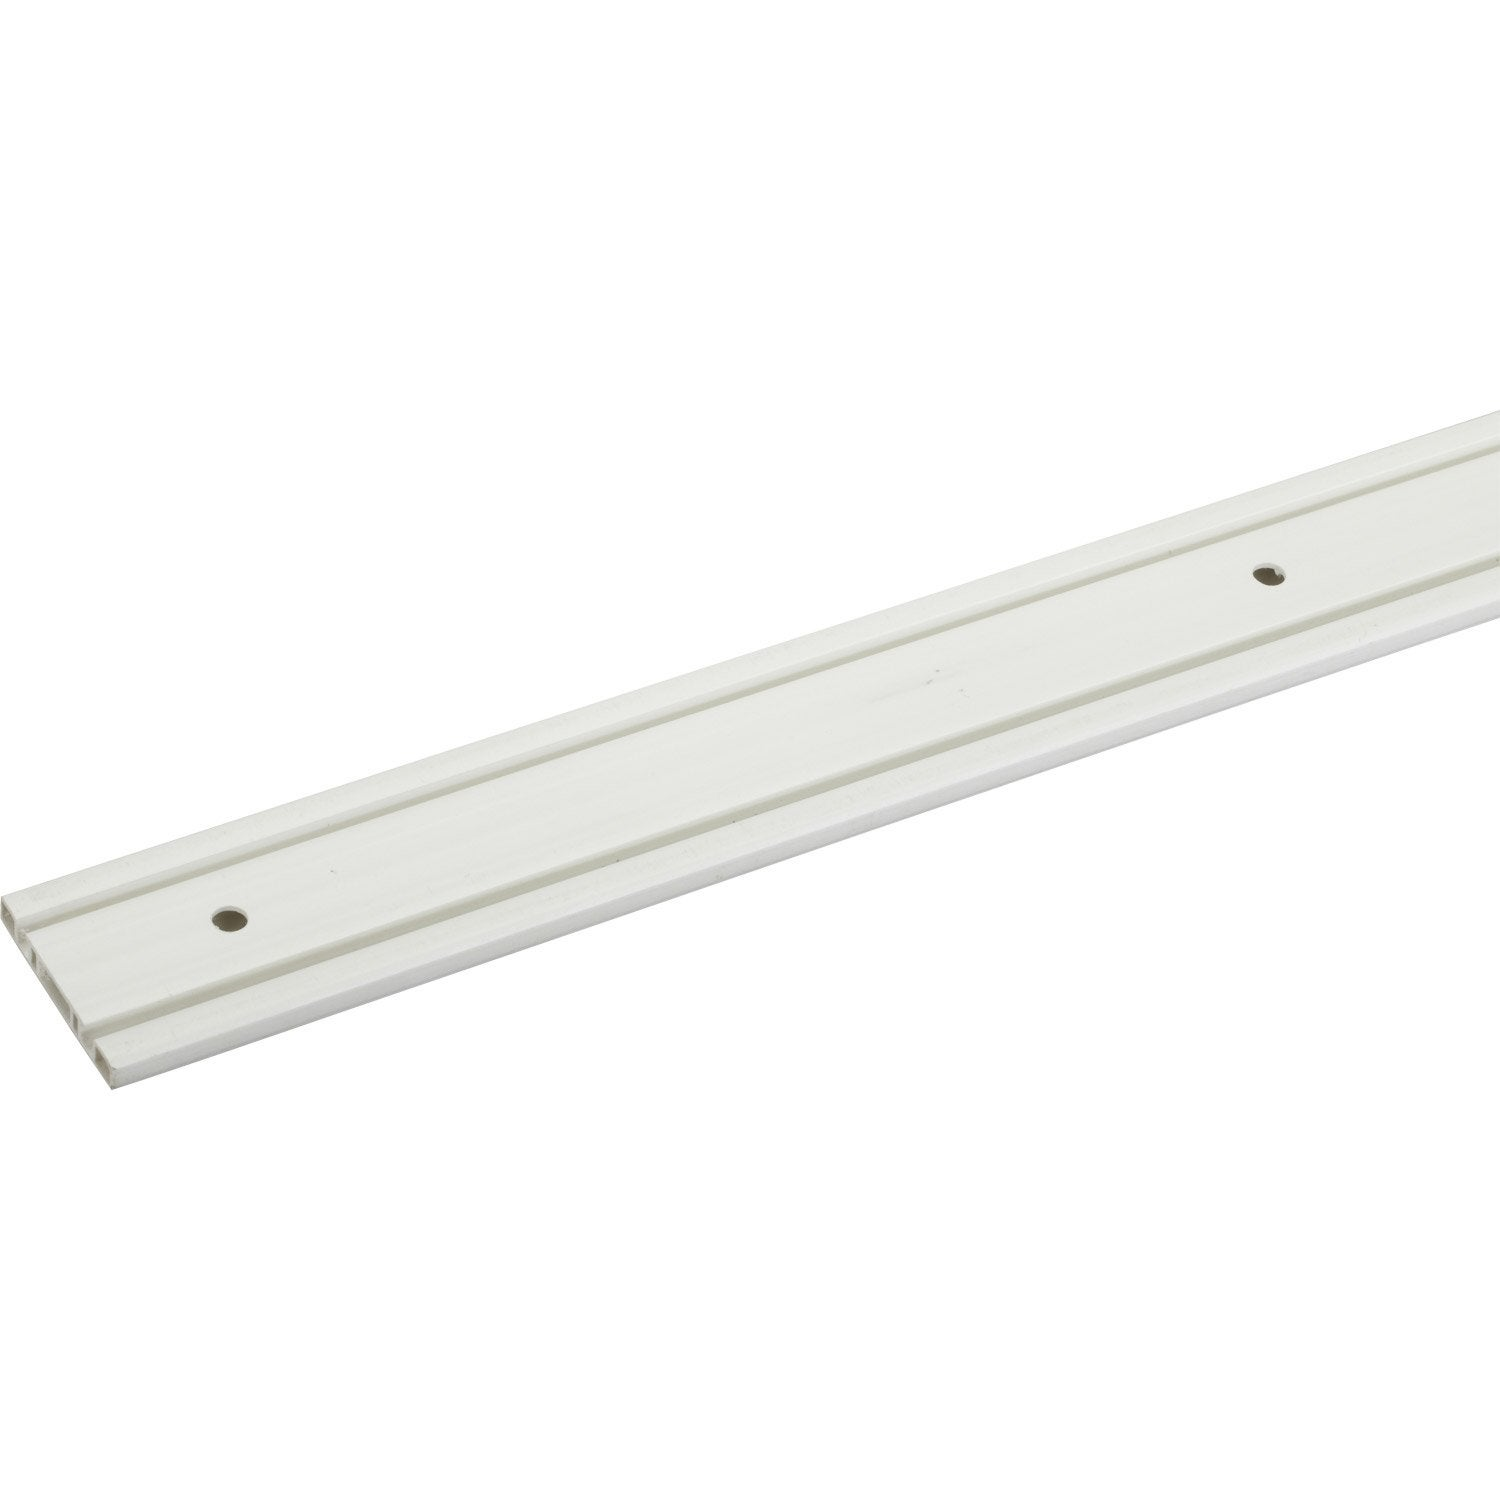 Rails porte coulissante id es de conception sont int ressan - Kit rail porte coulissante ...